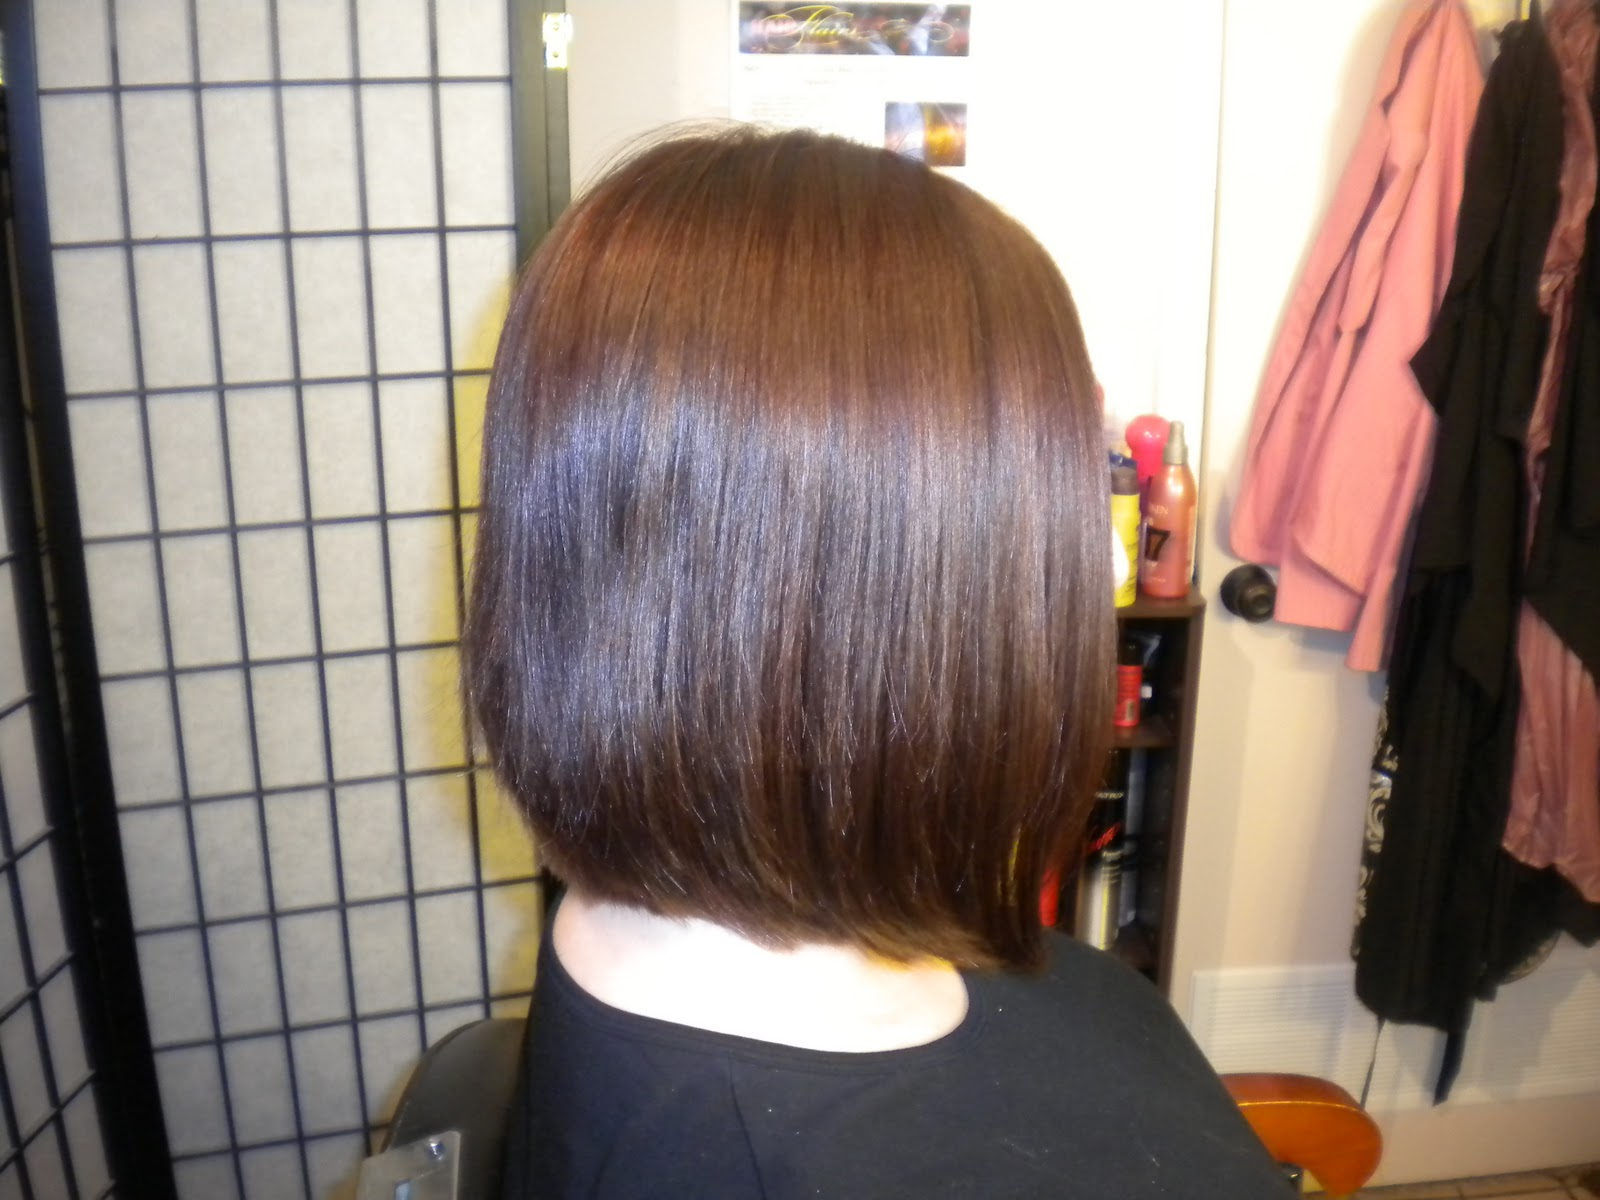 of a Hairstylist: Asymmetrical Bob Hair Cut/Color Before and Afters